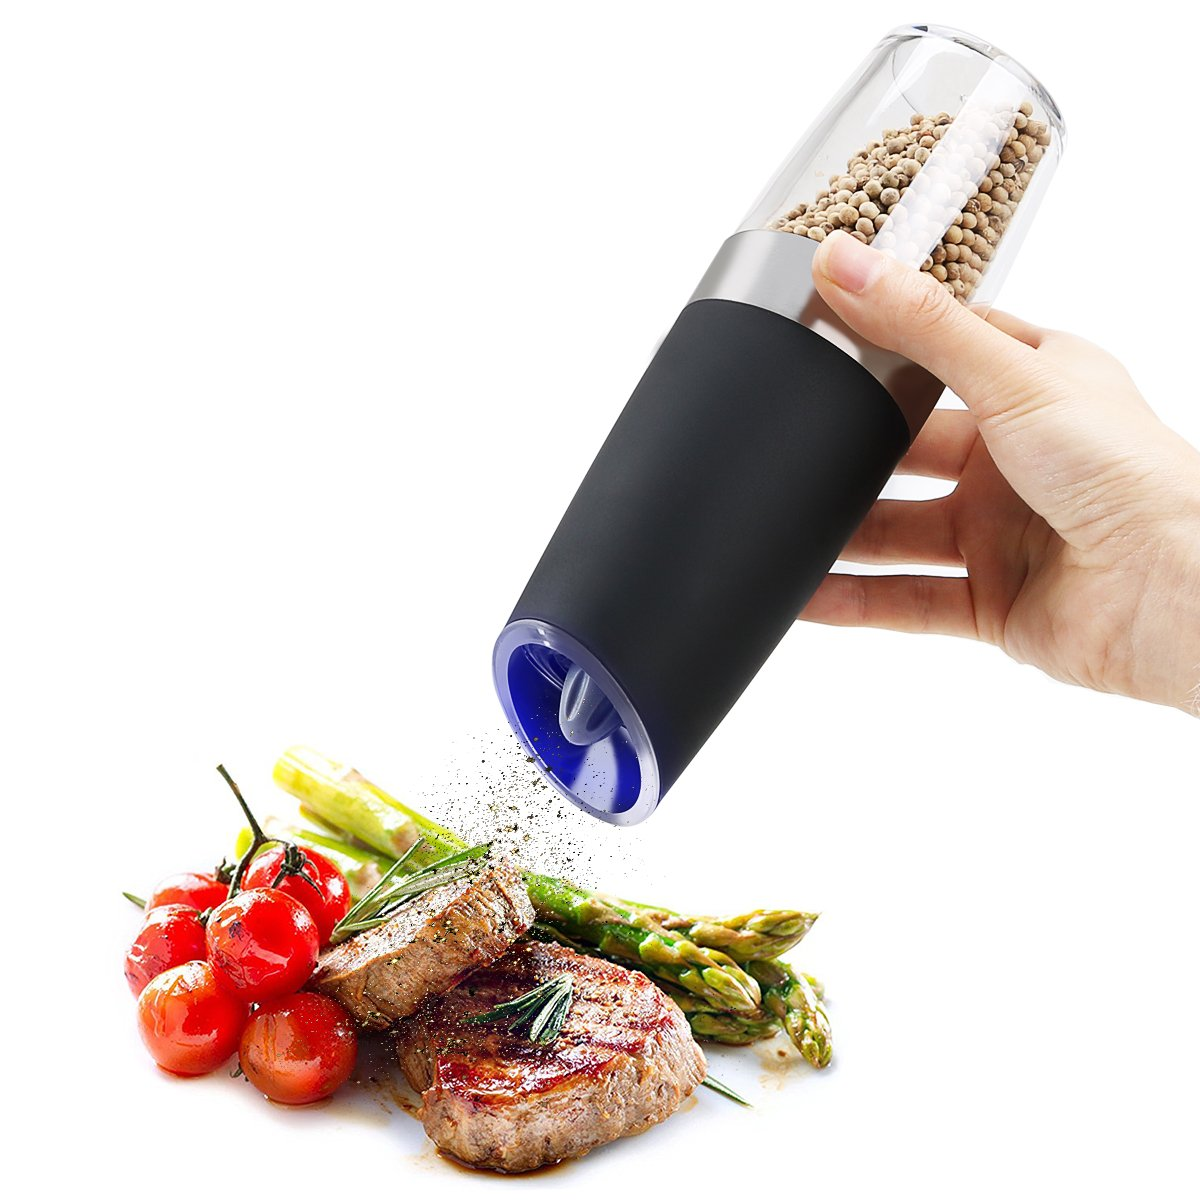 Electric Salt Pepper Grinder, Tilt to Automatic Pepper Mill and Salt Grinder, One Hand Operation, Adjustable Grind Coarseness, Blue LED Light, ABS/PBT Plastic SweetAlice